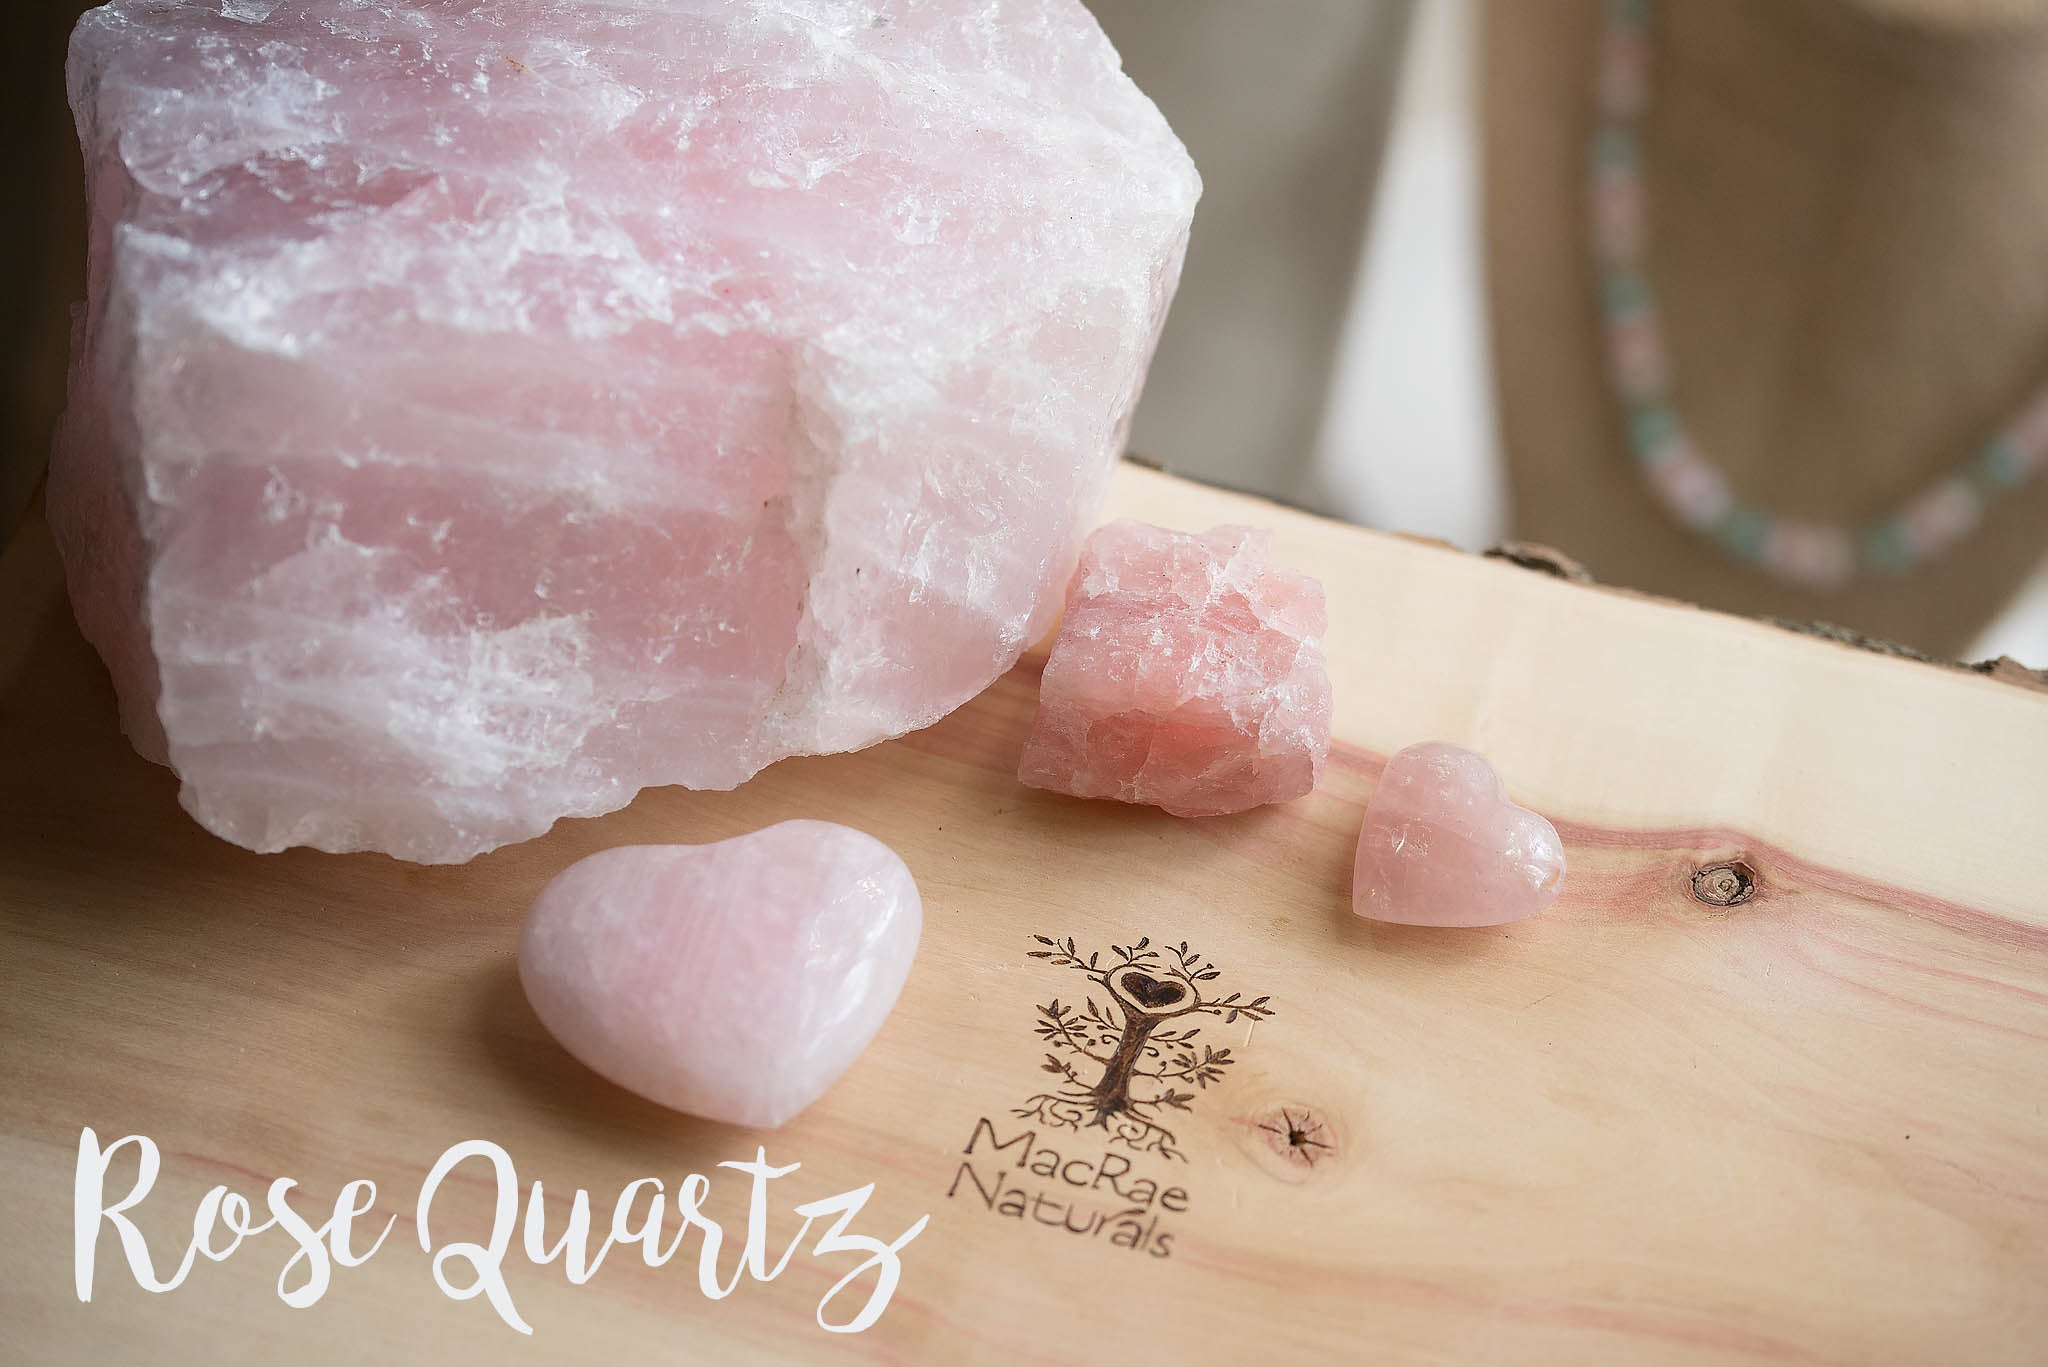 MacRae Naturals Crystal Healing Jewelry- Rose Quartz Blog